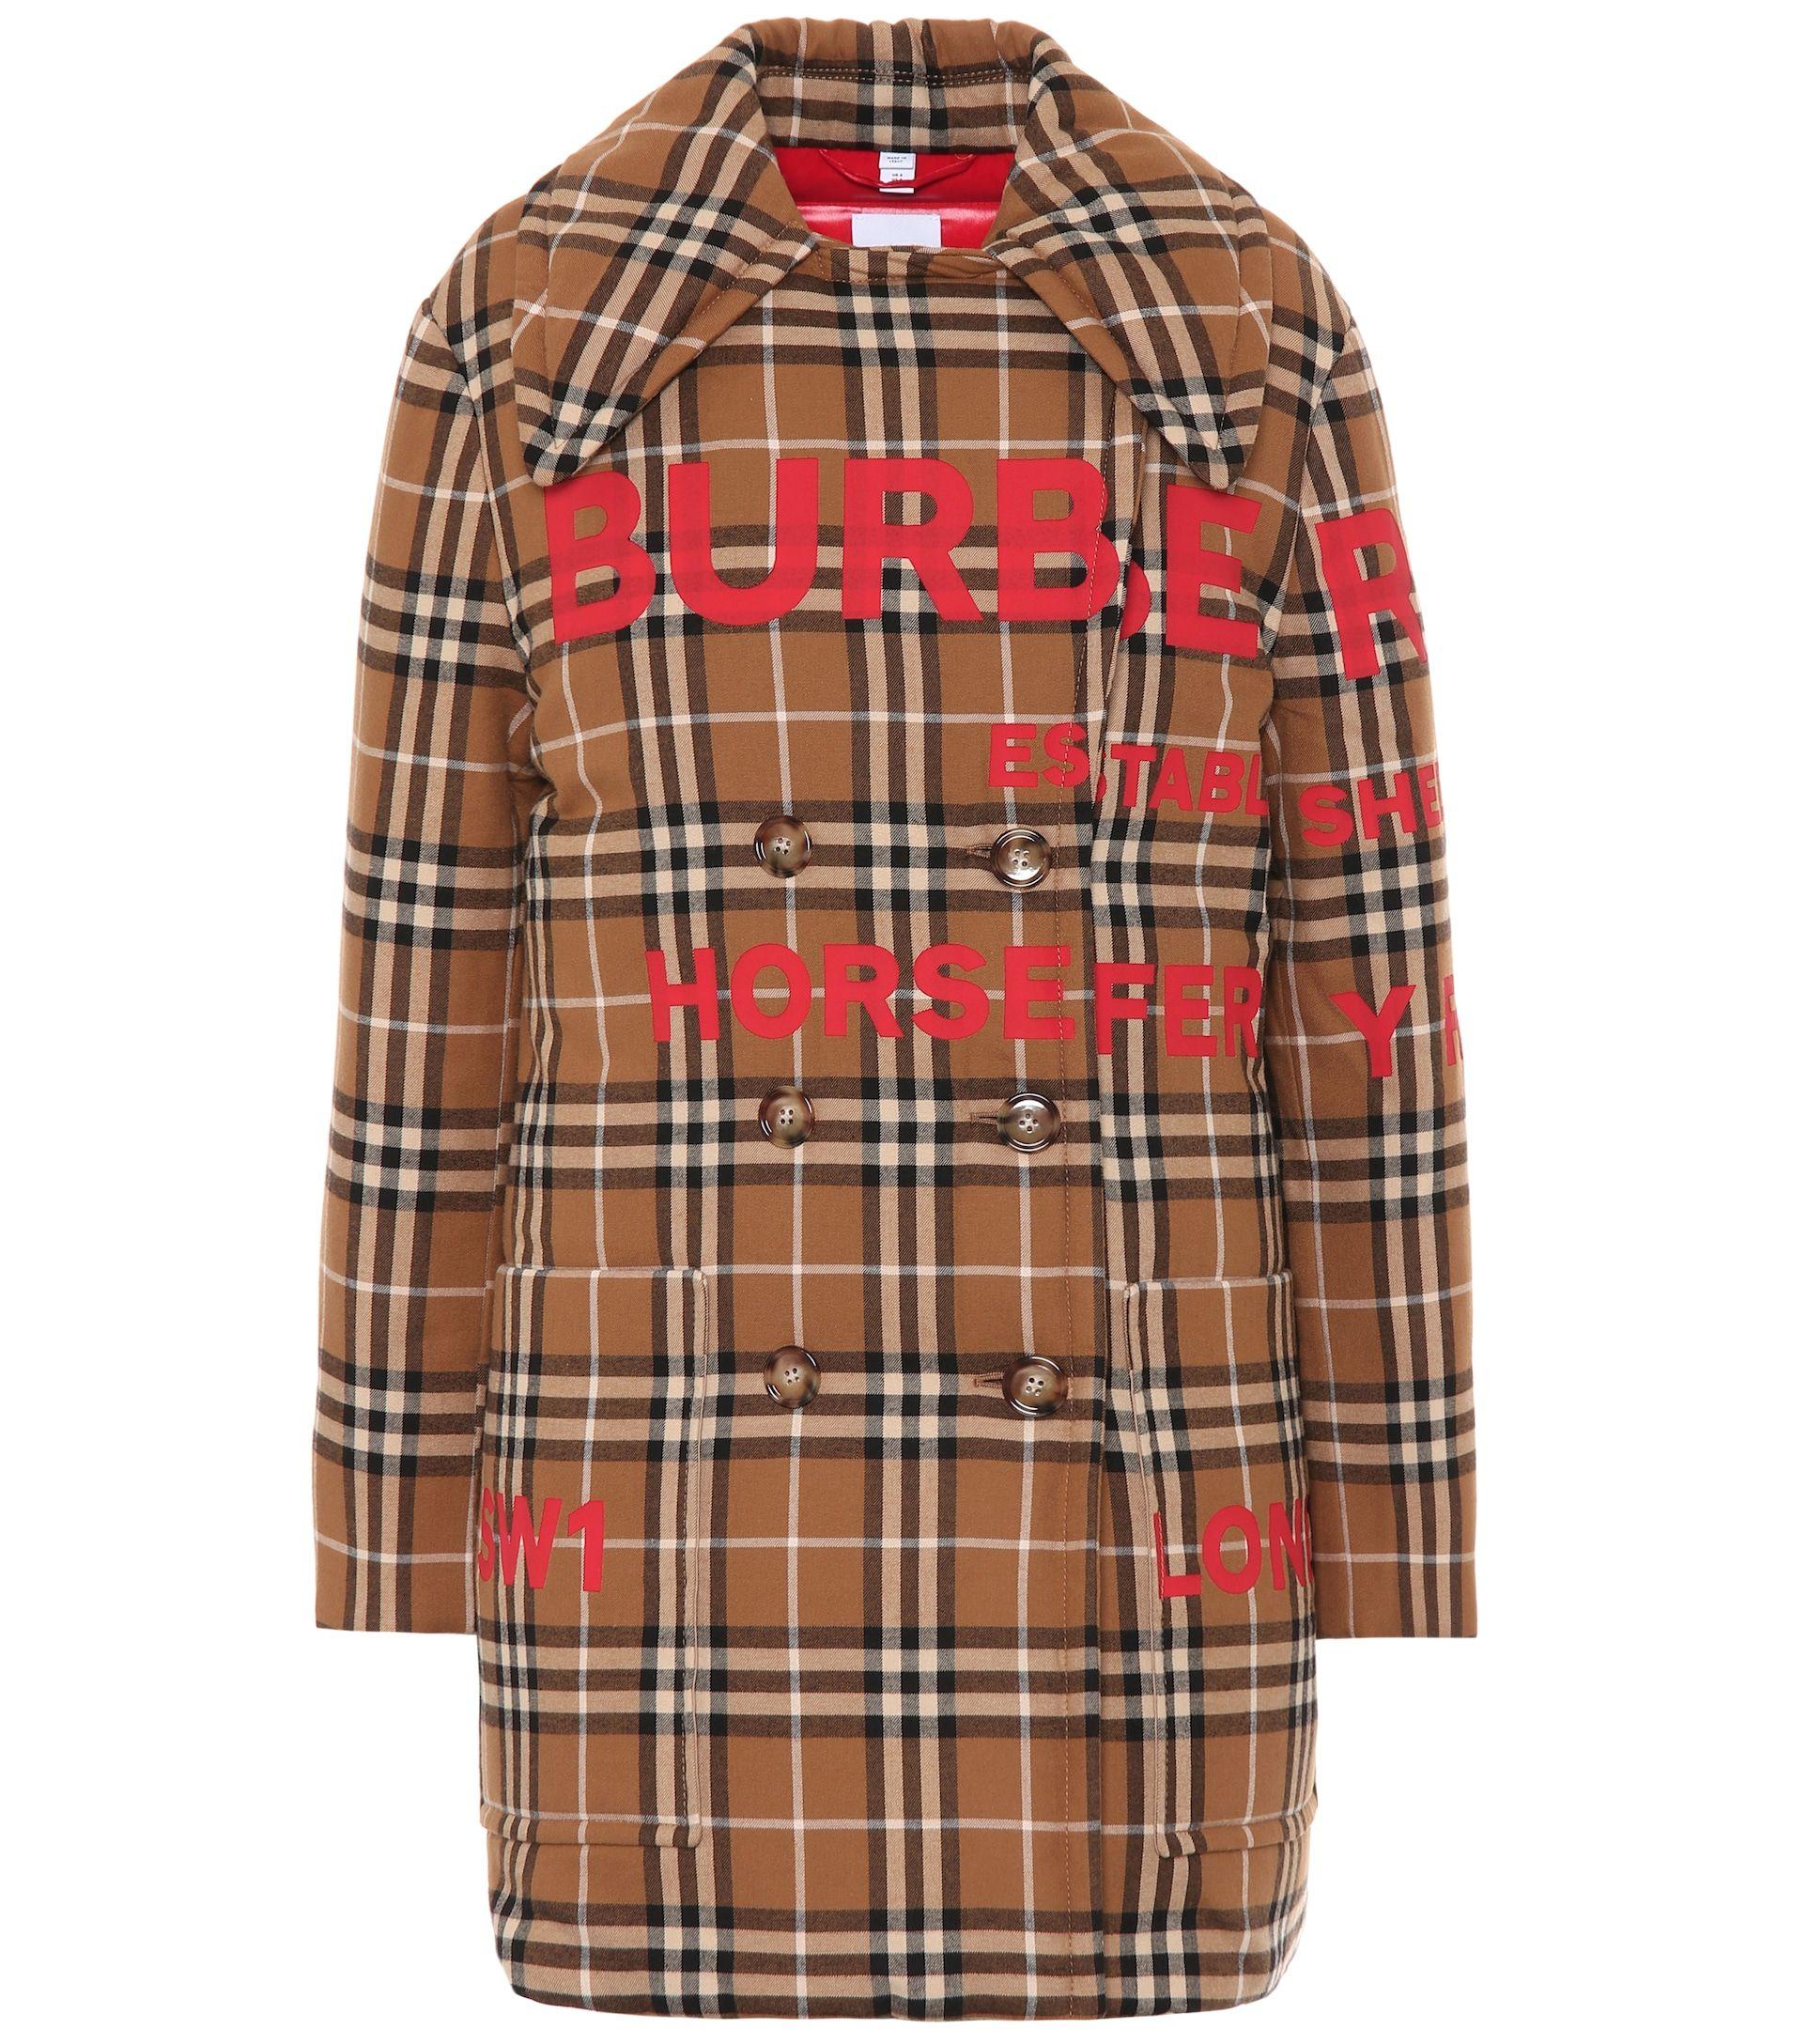 burberry-horseferry-print-check-down-filled-oversized-pea-coat